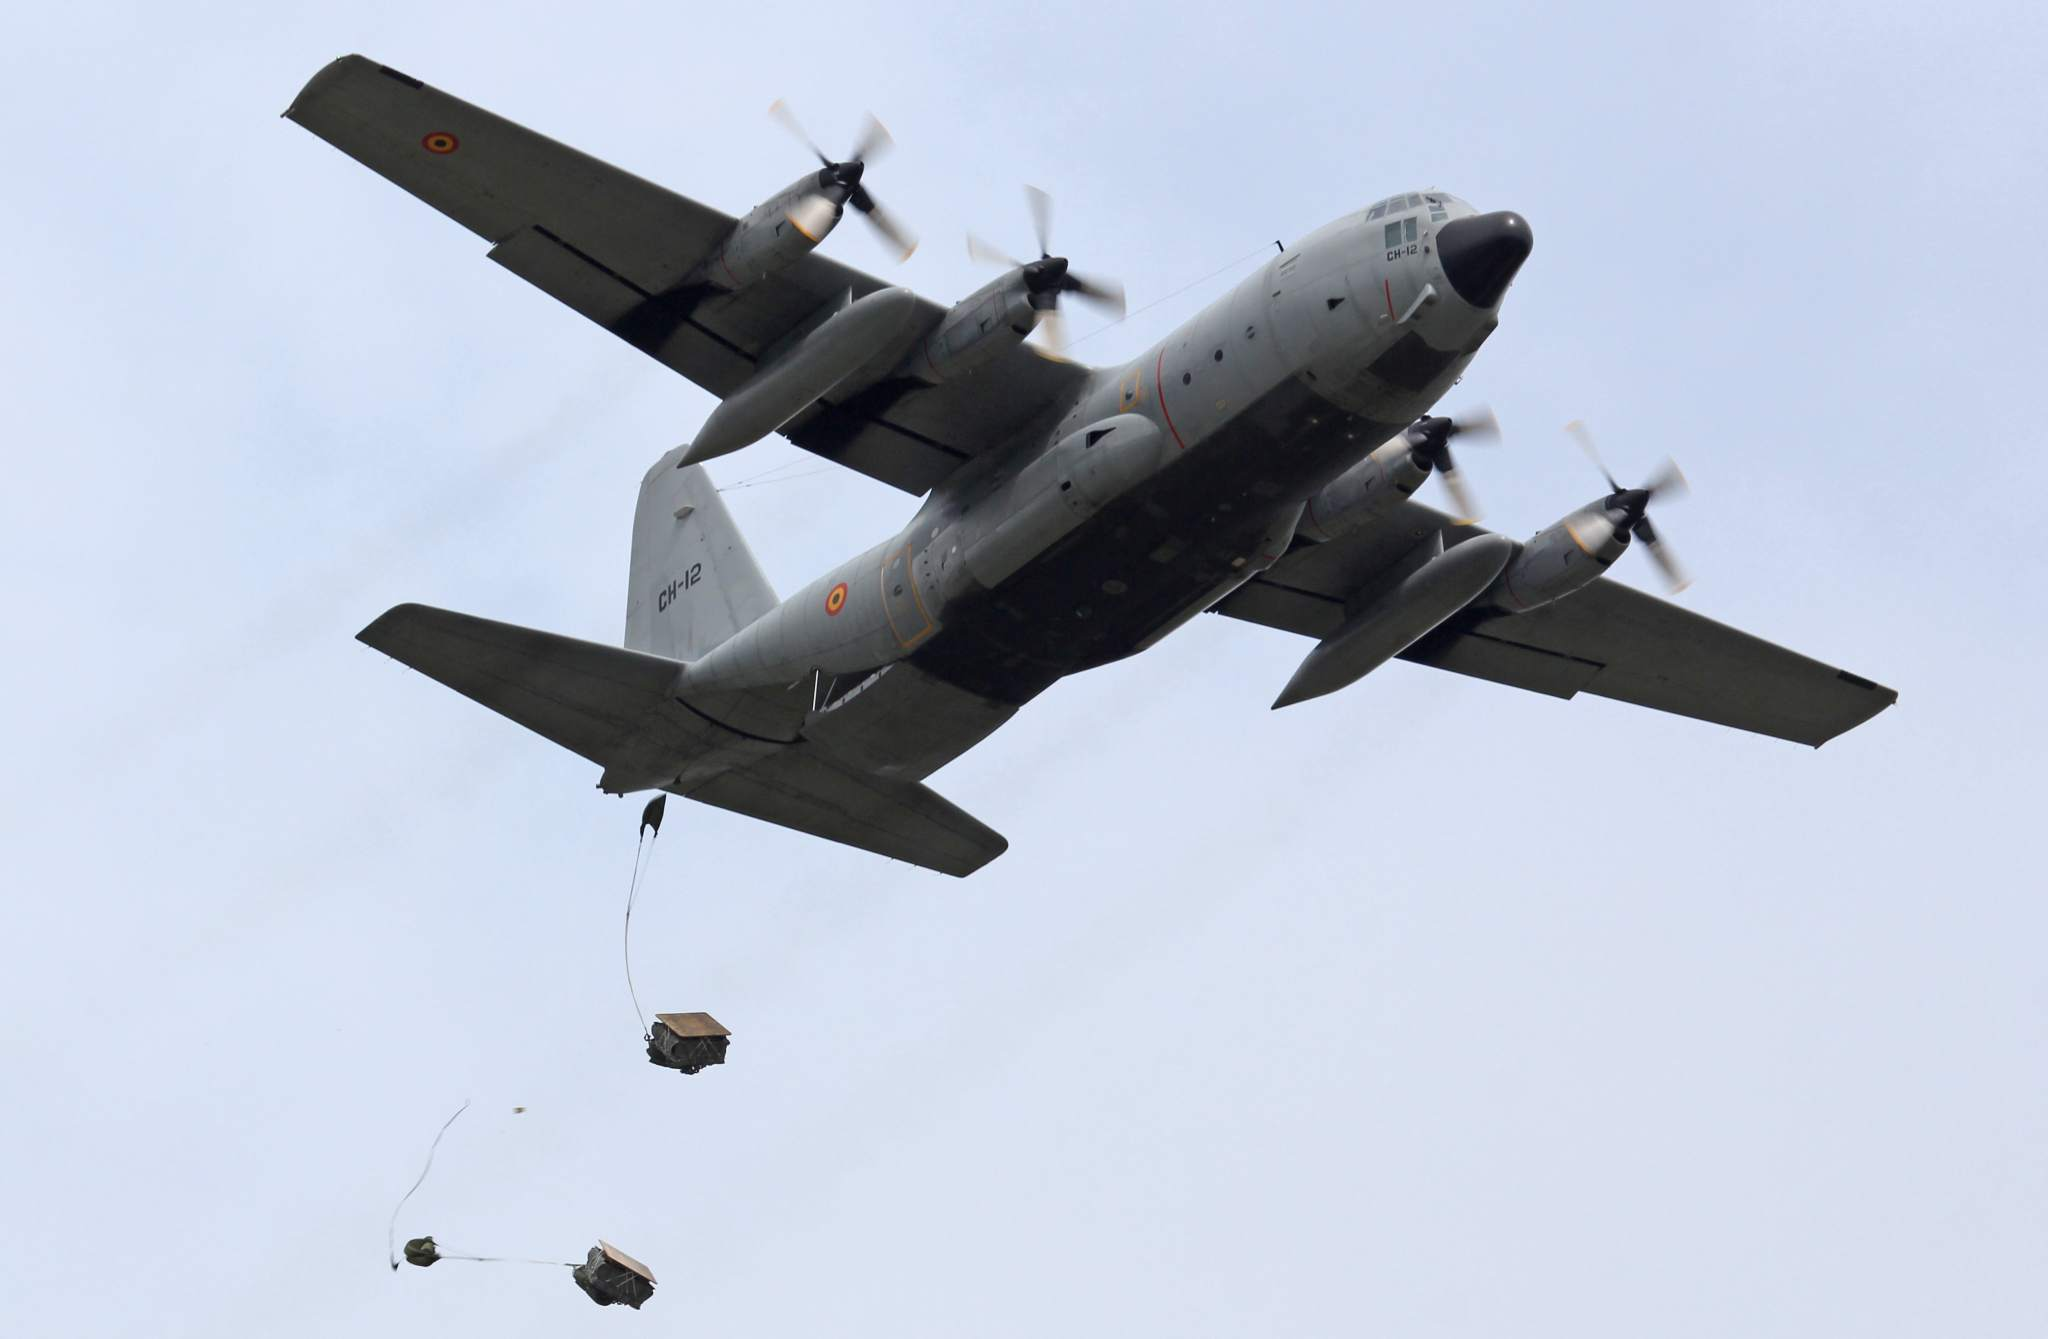 An air drop during the EATT14 training course. Photo via European Defence Agency on Flickr.